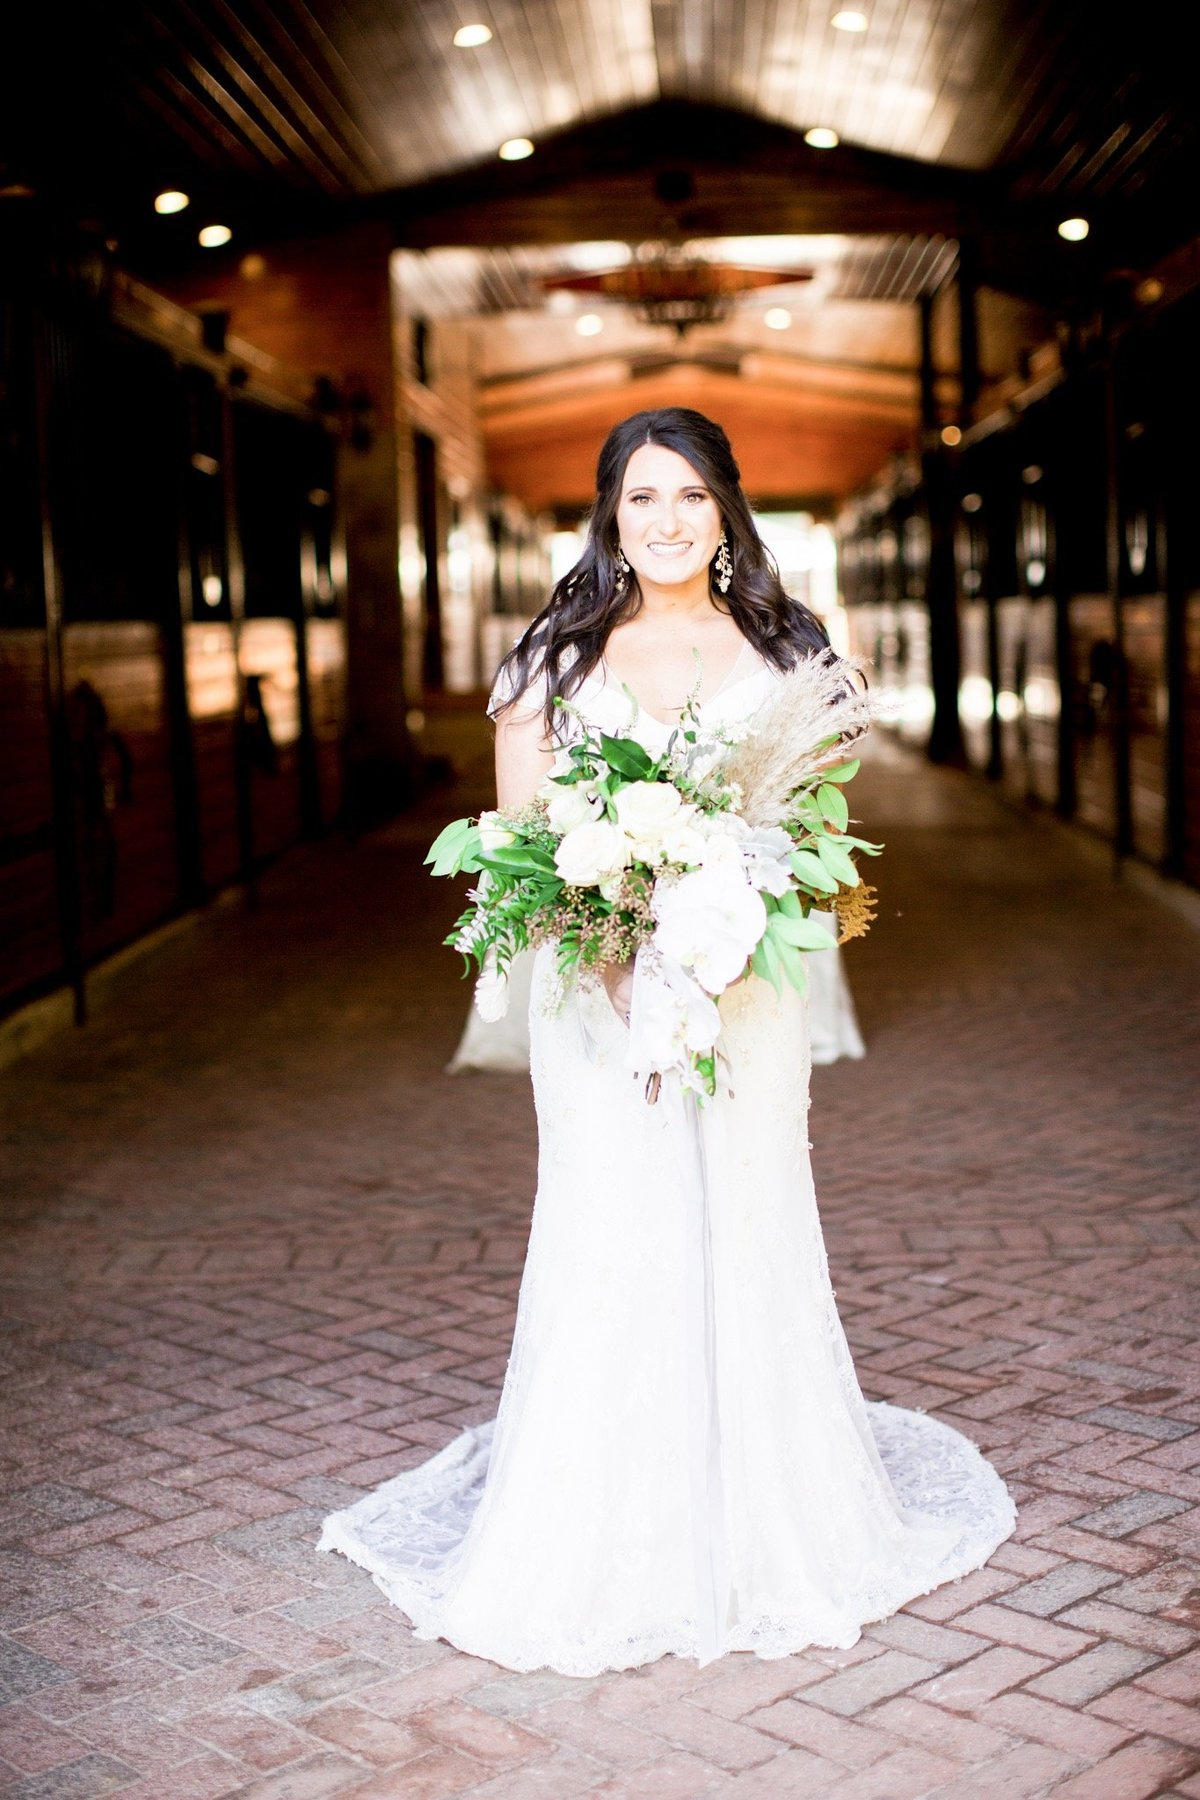 Windwood_Equestrian_Weddings__birmingham_Alabama_bride_outddor_farm_venue294